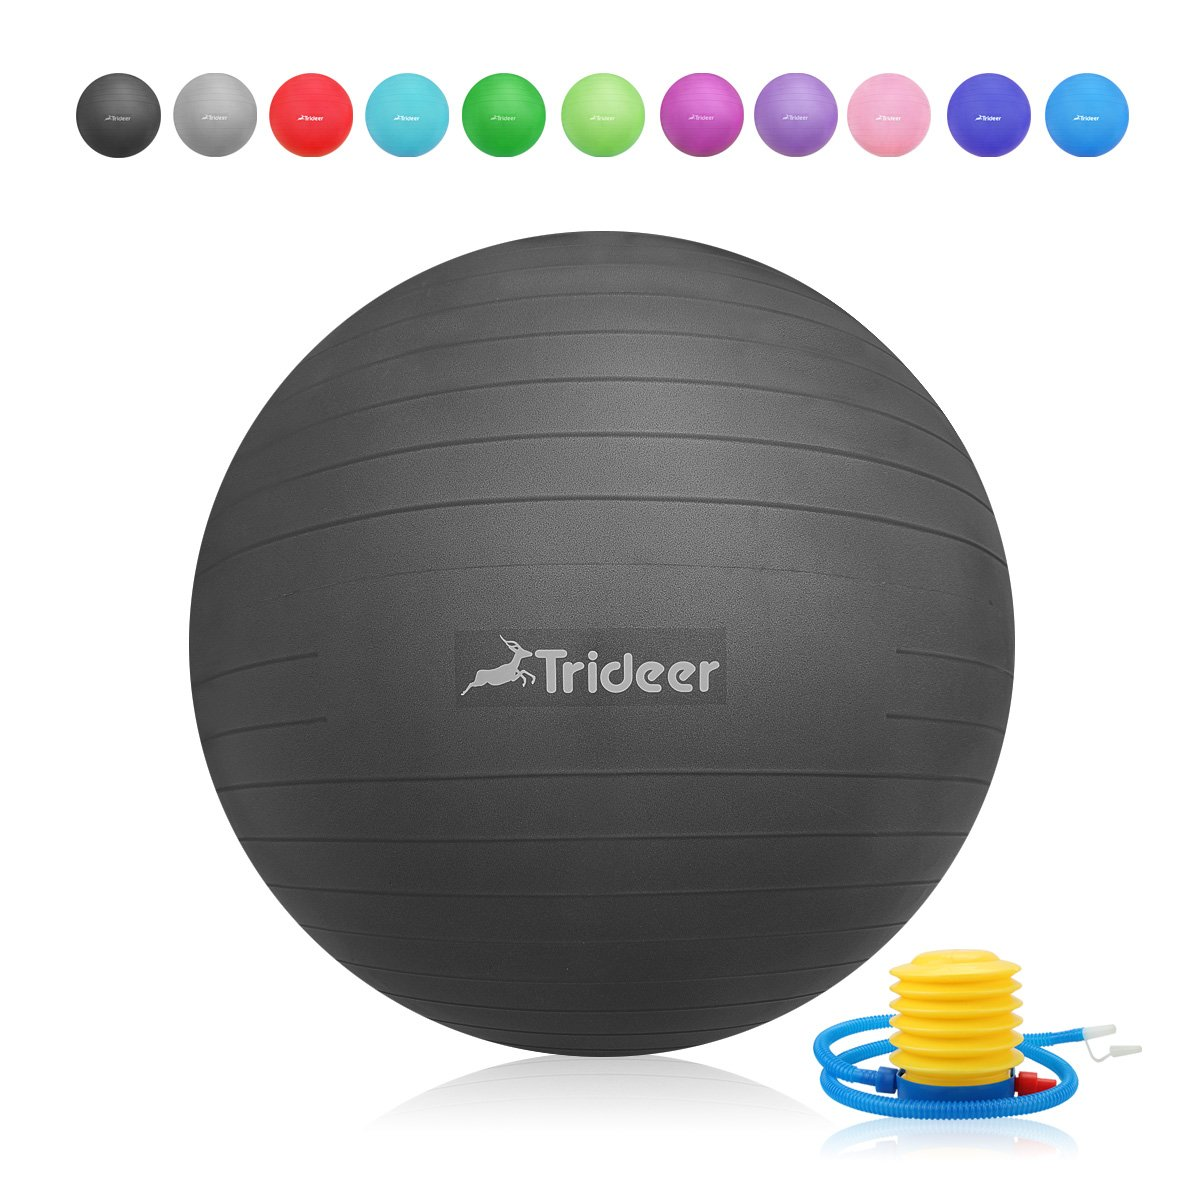 Trideer Exercise Ball (45-85cm) Yoga Ball Chair, Anti-Burst & Extra Thick, Birthing Ball with Quick Pump, Supports 2200lbs, Stability Ball (Office and Home) by Trideer (Image #1)